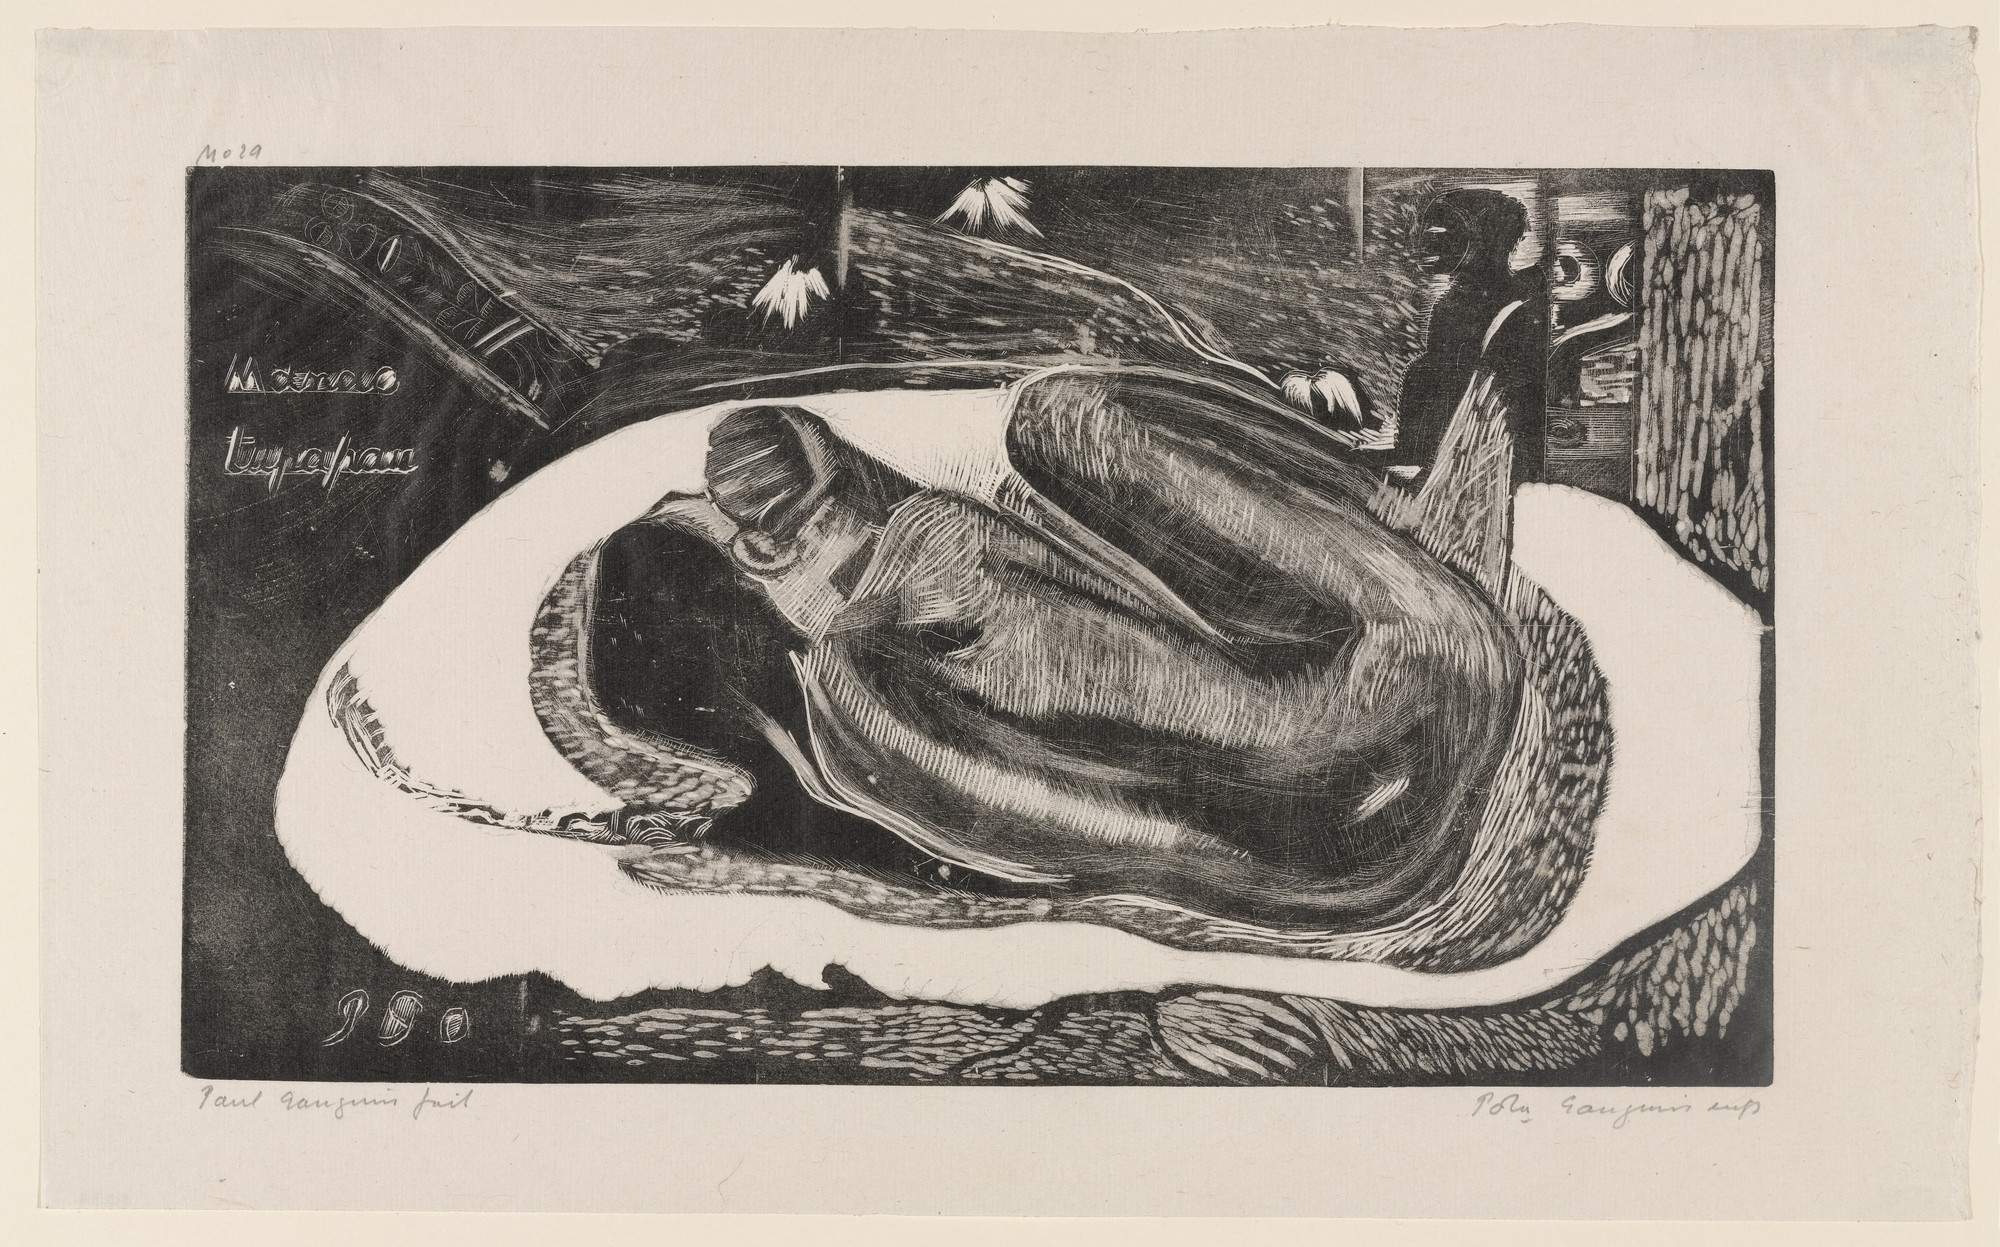 Paul Gauguin. Manao tupapau (Watched by the Spirit of the Dead) from Noa Noa (Fragrant Scent). 1894, printed 1921